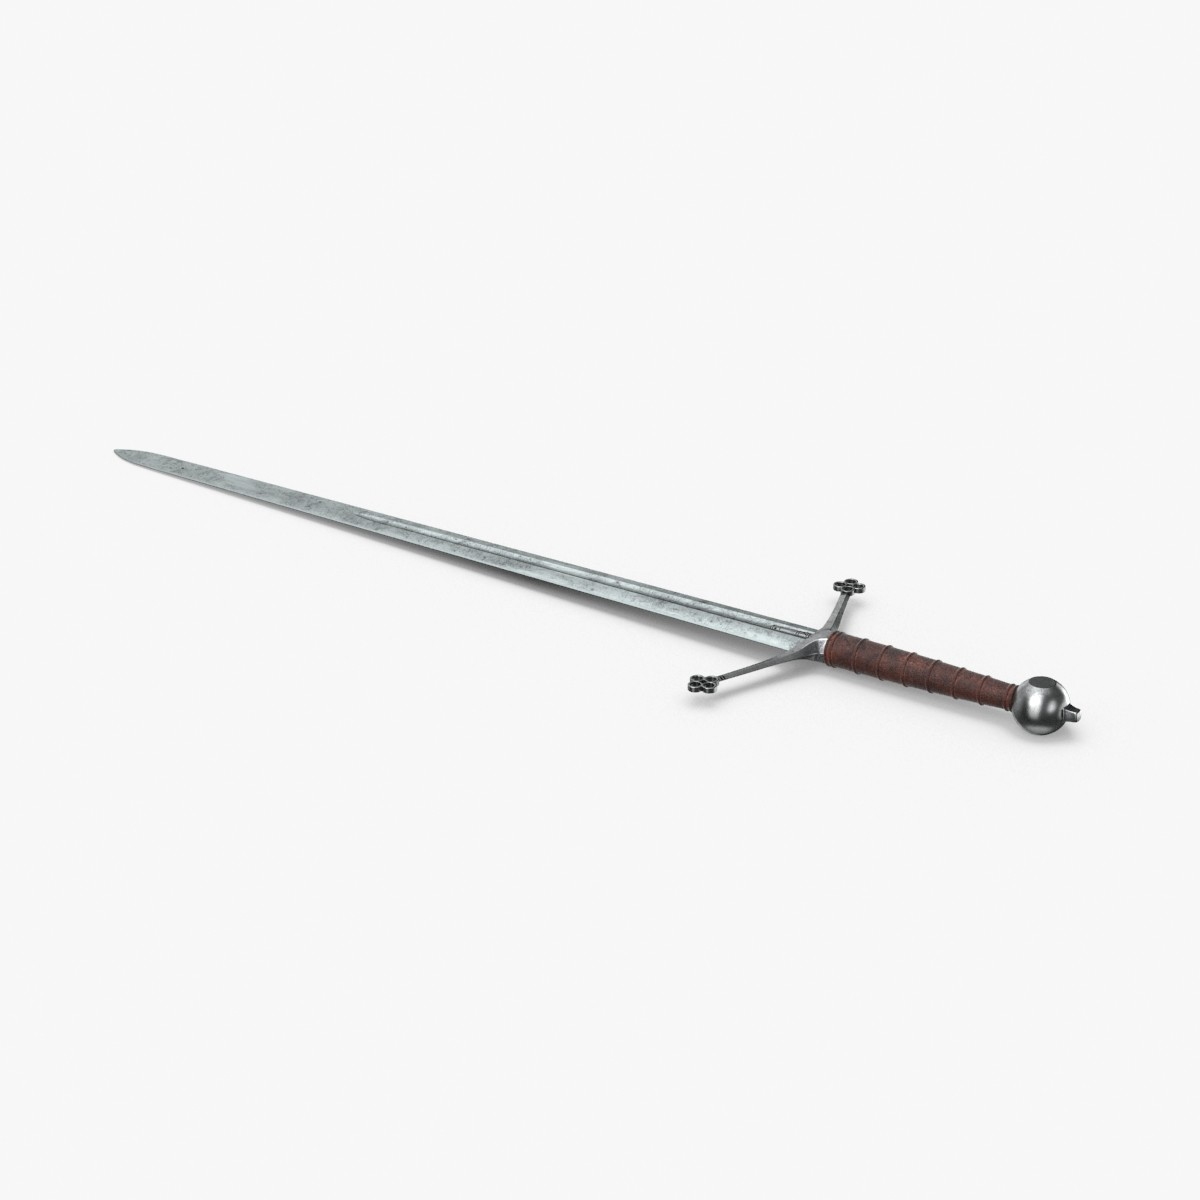 medieval-broadsword 3D model